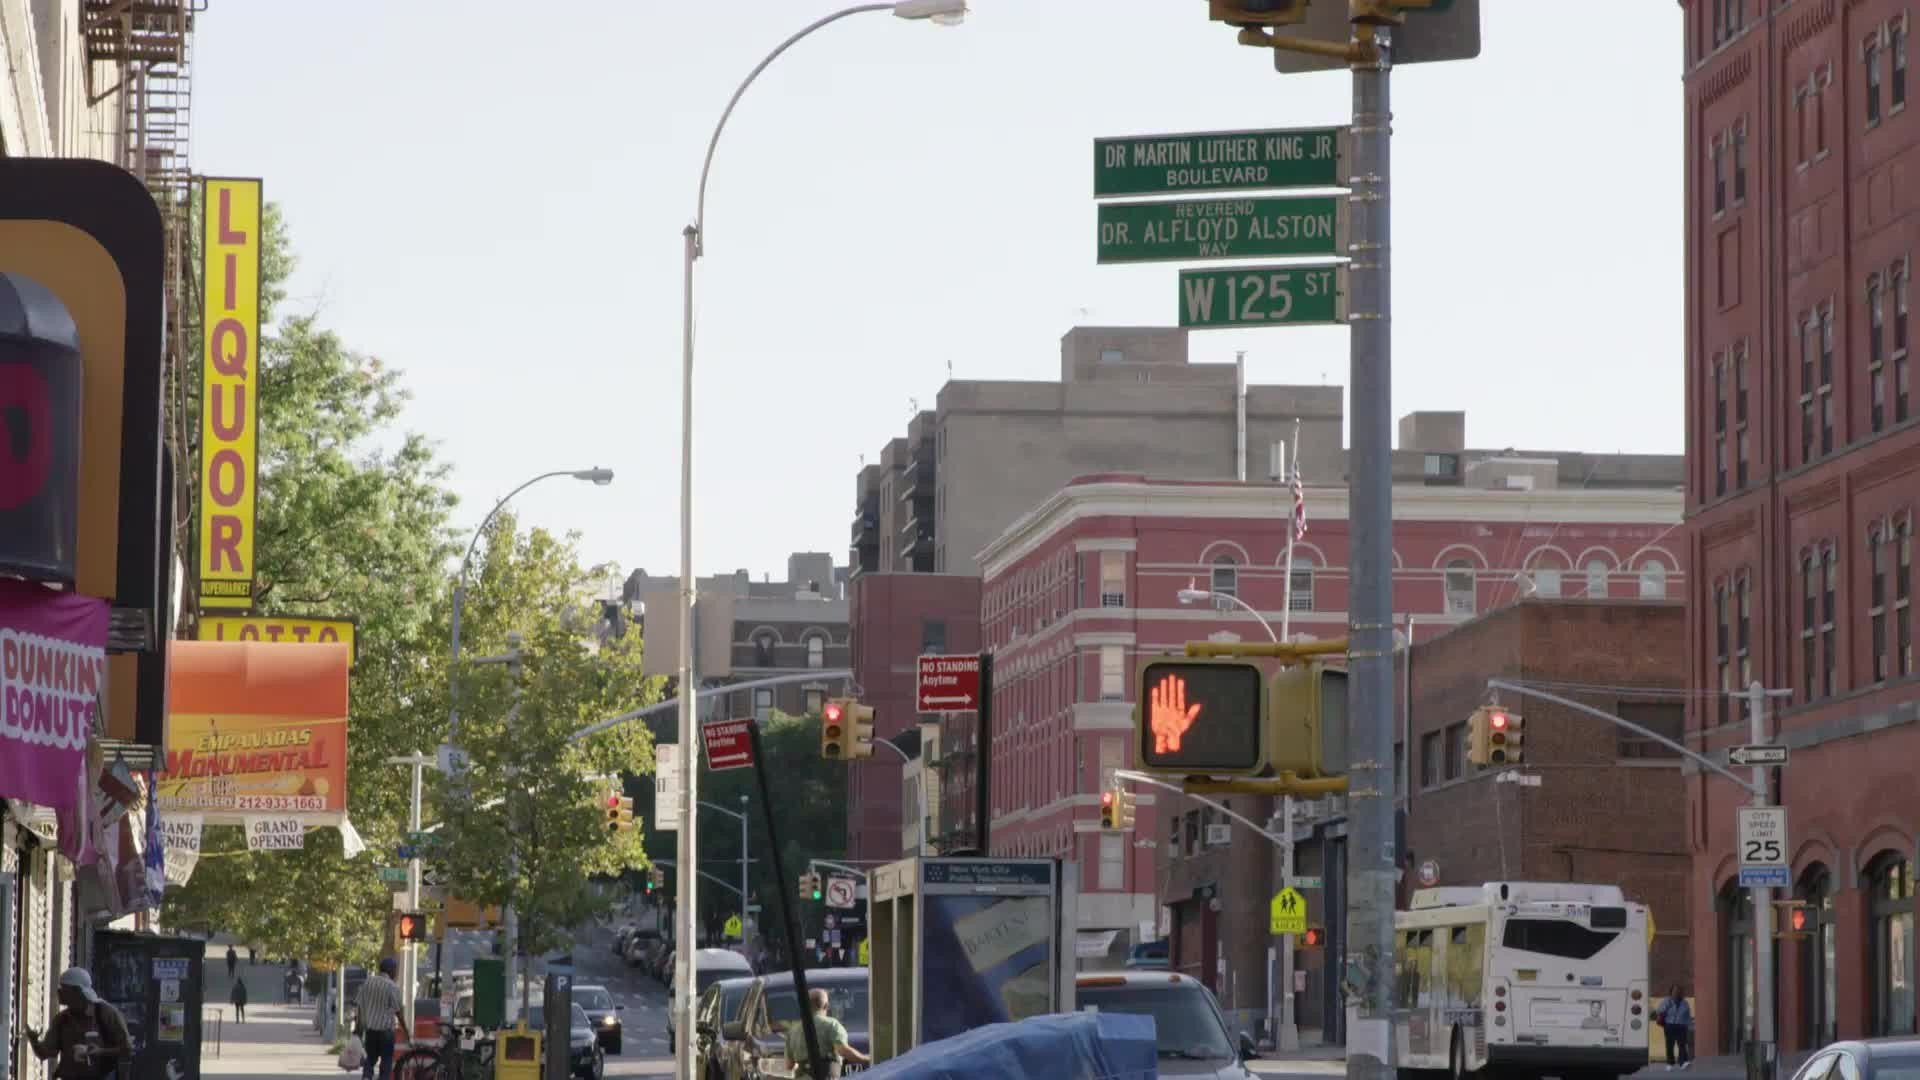 125th Street sign - cars and bus driving in street in Harlem - uptown